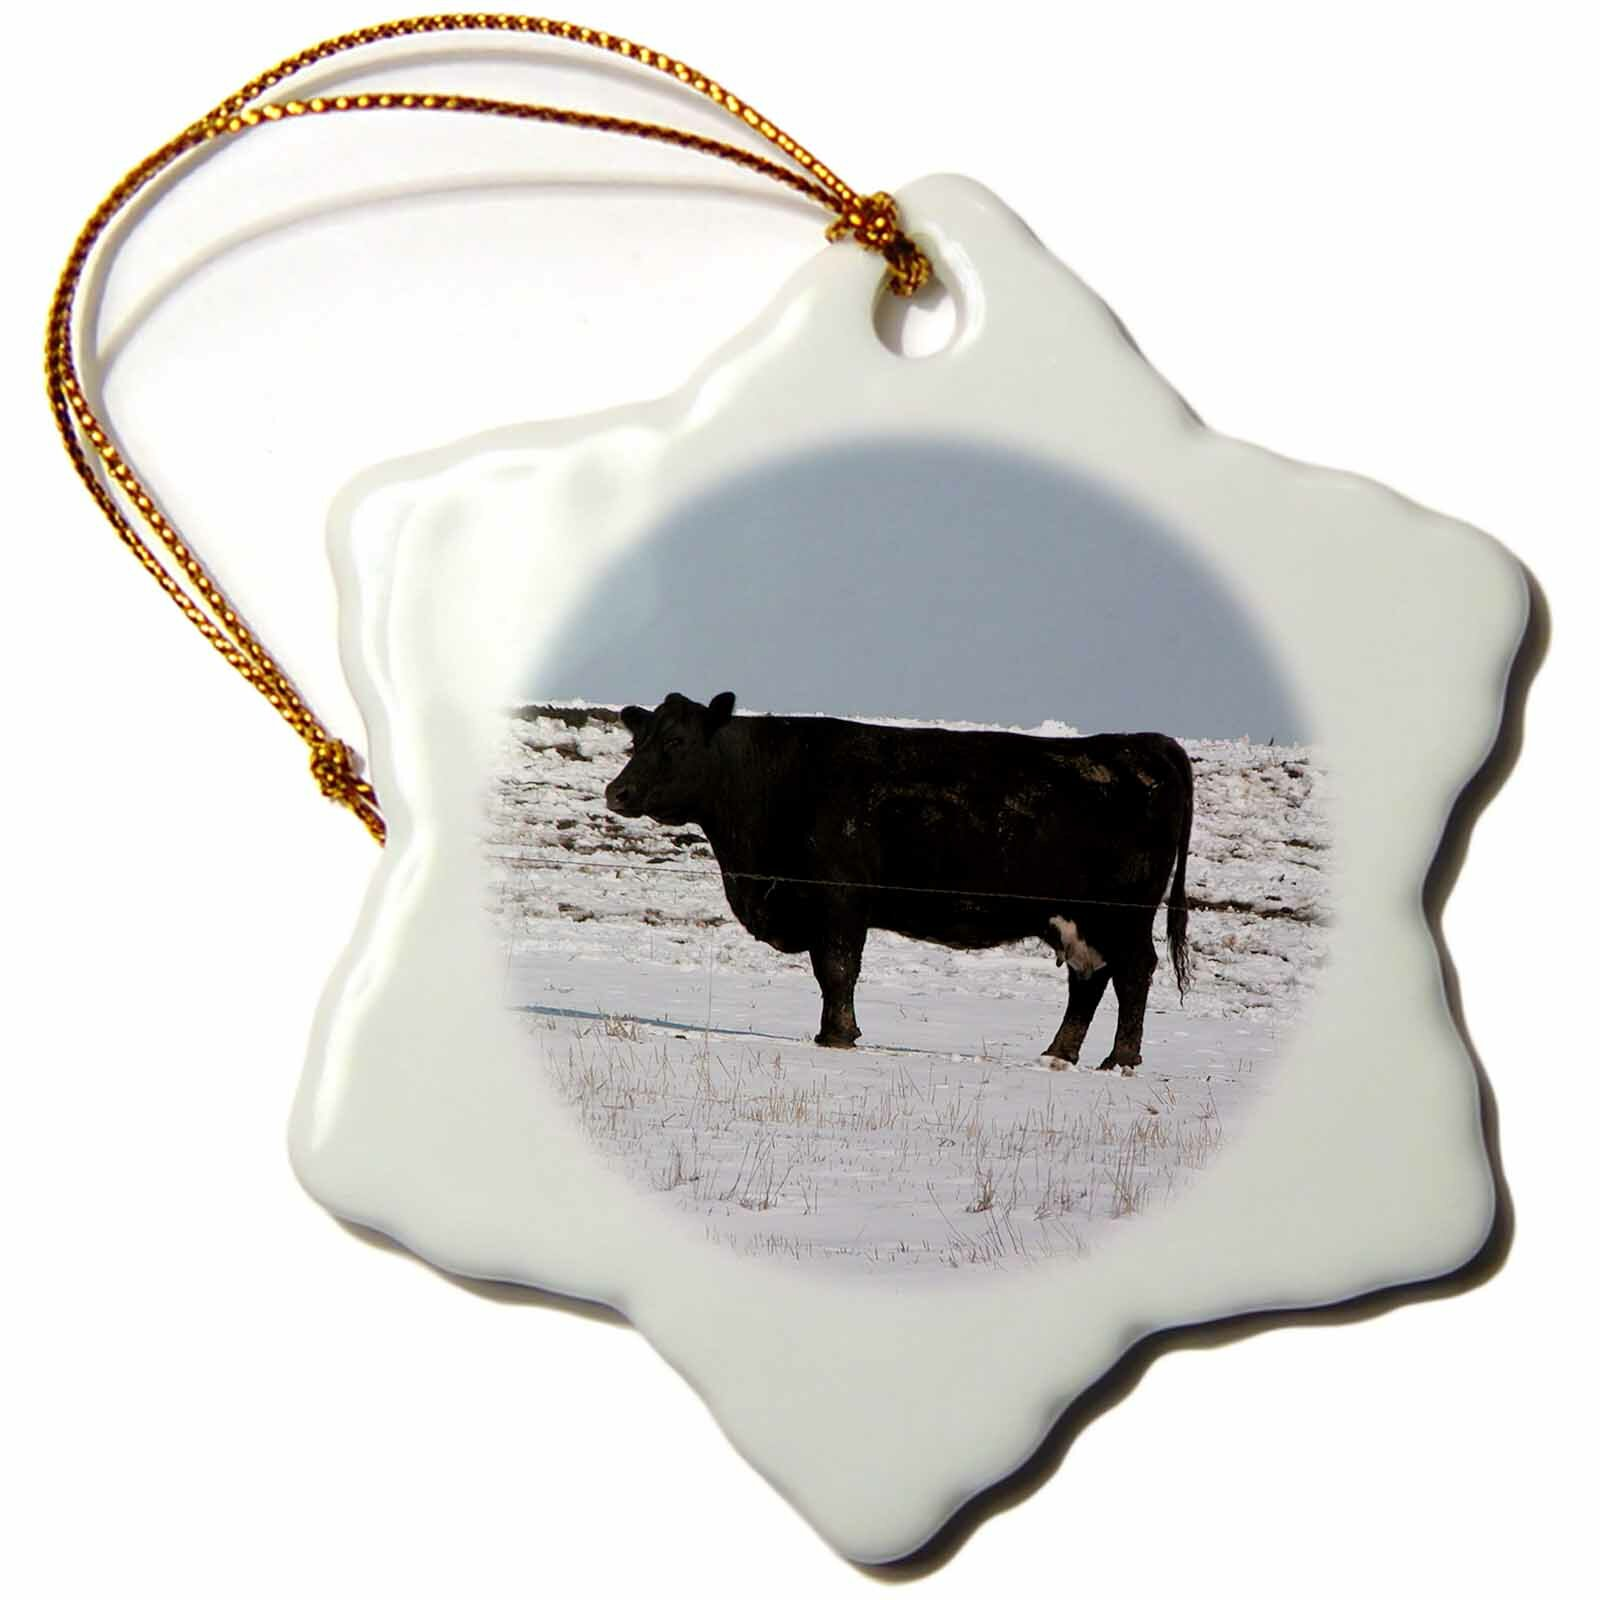 The Holiday Aisle Black Cow In The Snow Holiday Shaped Ornament Wayfair